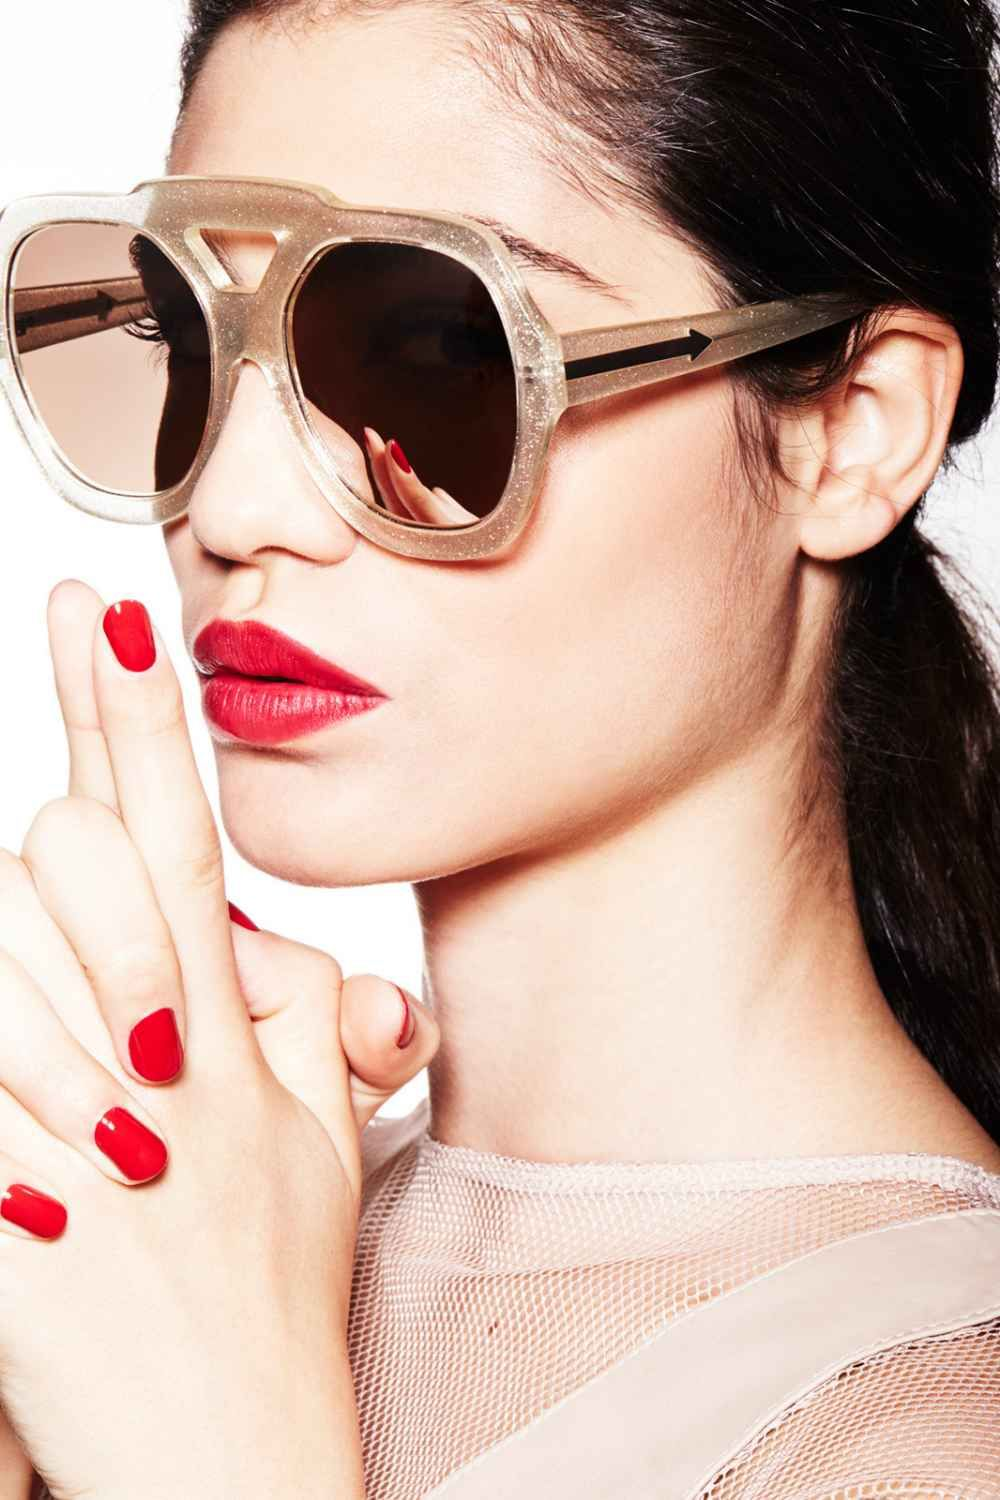 """Electro-Red Red-hot lips and matching nails smolder in the summer sun. It's enough of a statement that you can keep the rest of your outfit in the nude-color family. That goes for your makeup, too, especially during the day. """"Red is a minimalist's best friend,"""" Hubbard says. """"A tinted moisturizer, mascara, and a defined brow are all you need to go with it."""" As for how to pick the perfect red? """"If you have a cool complexion, go for a blue-based red. If you're warm-toned, an orange or coral…"""